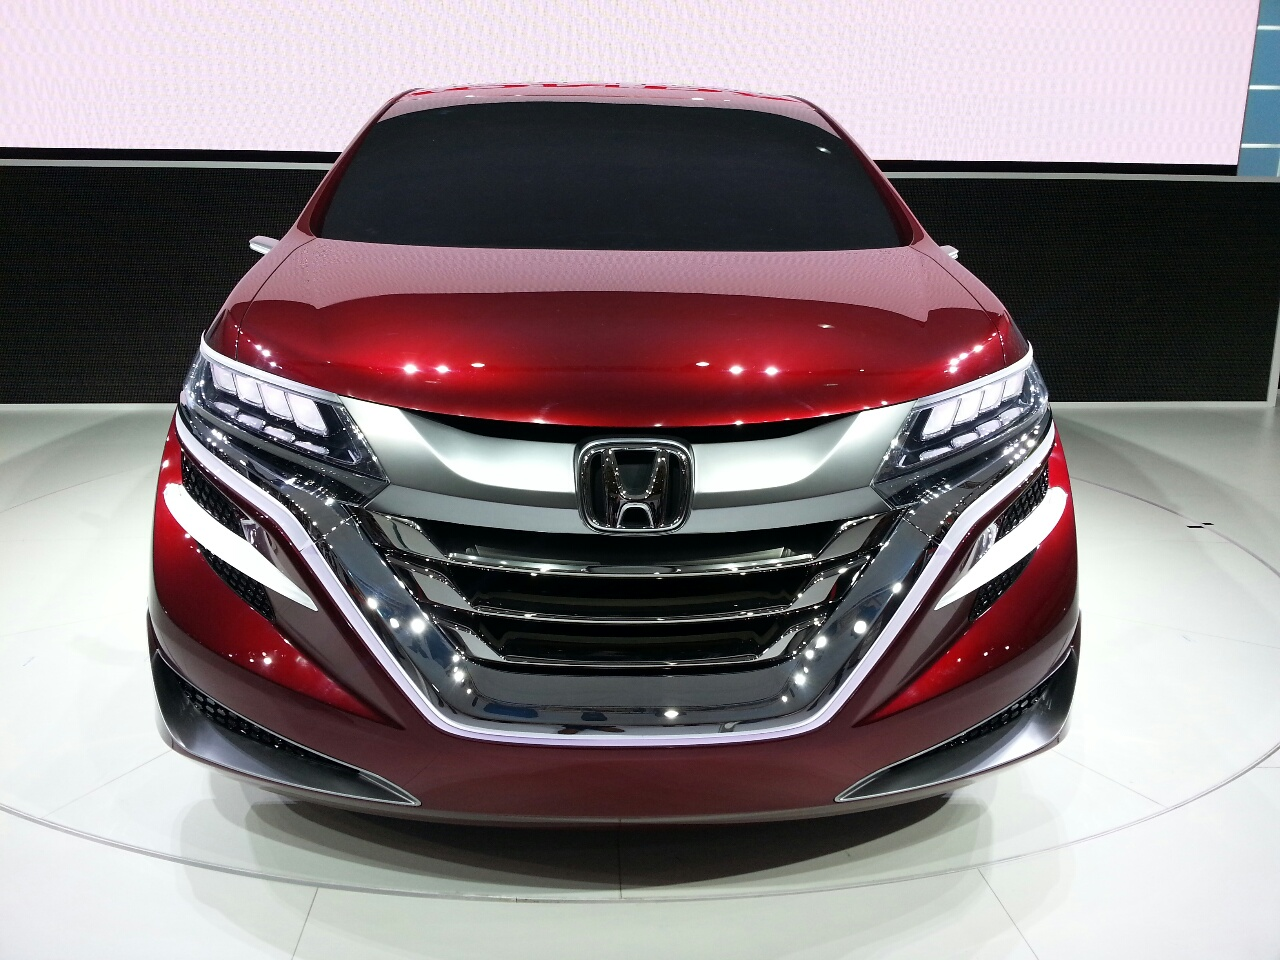 Auto Shanghai Live Honda Concept M previews future MPV Wallpaper For Ios